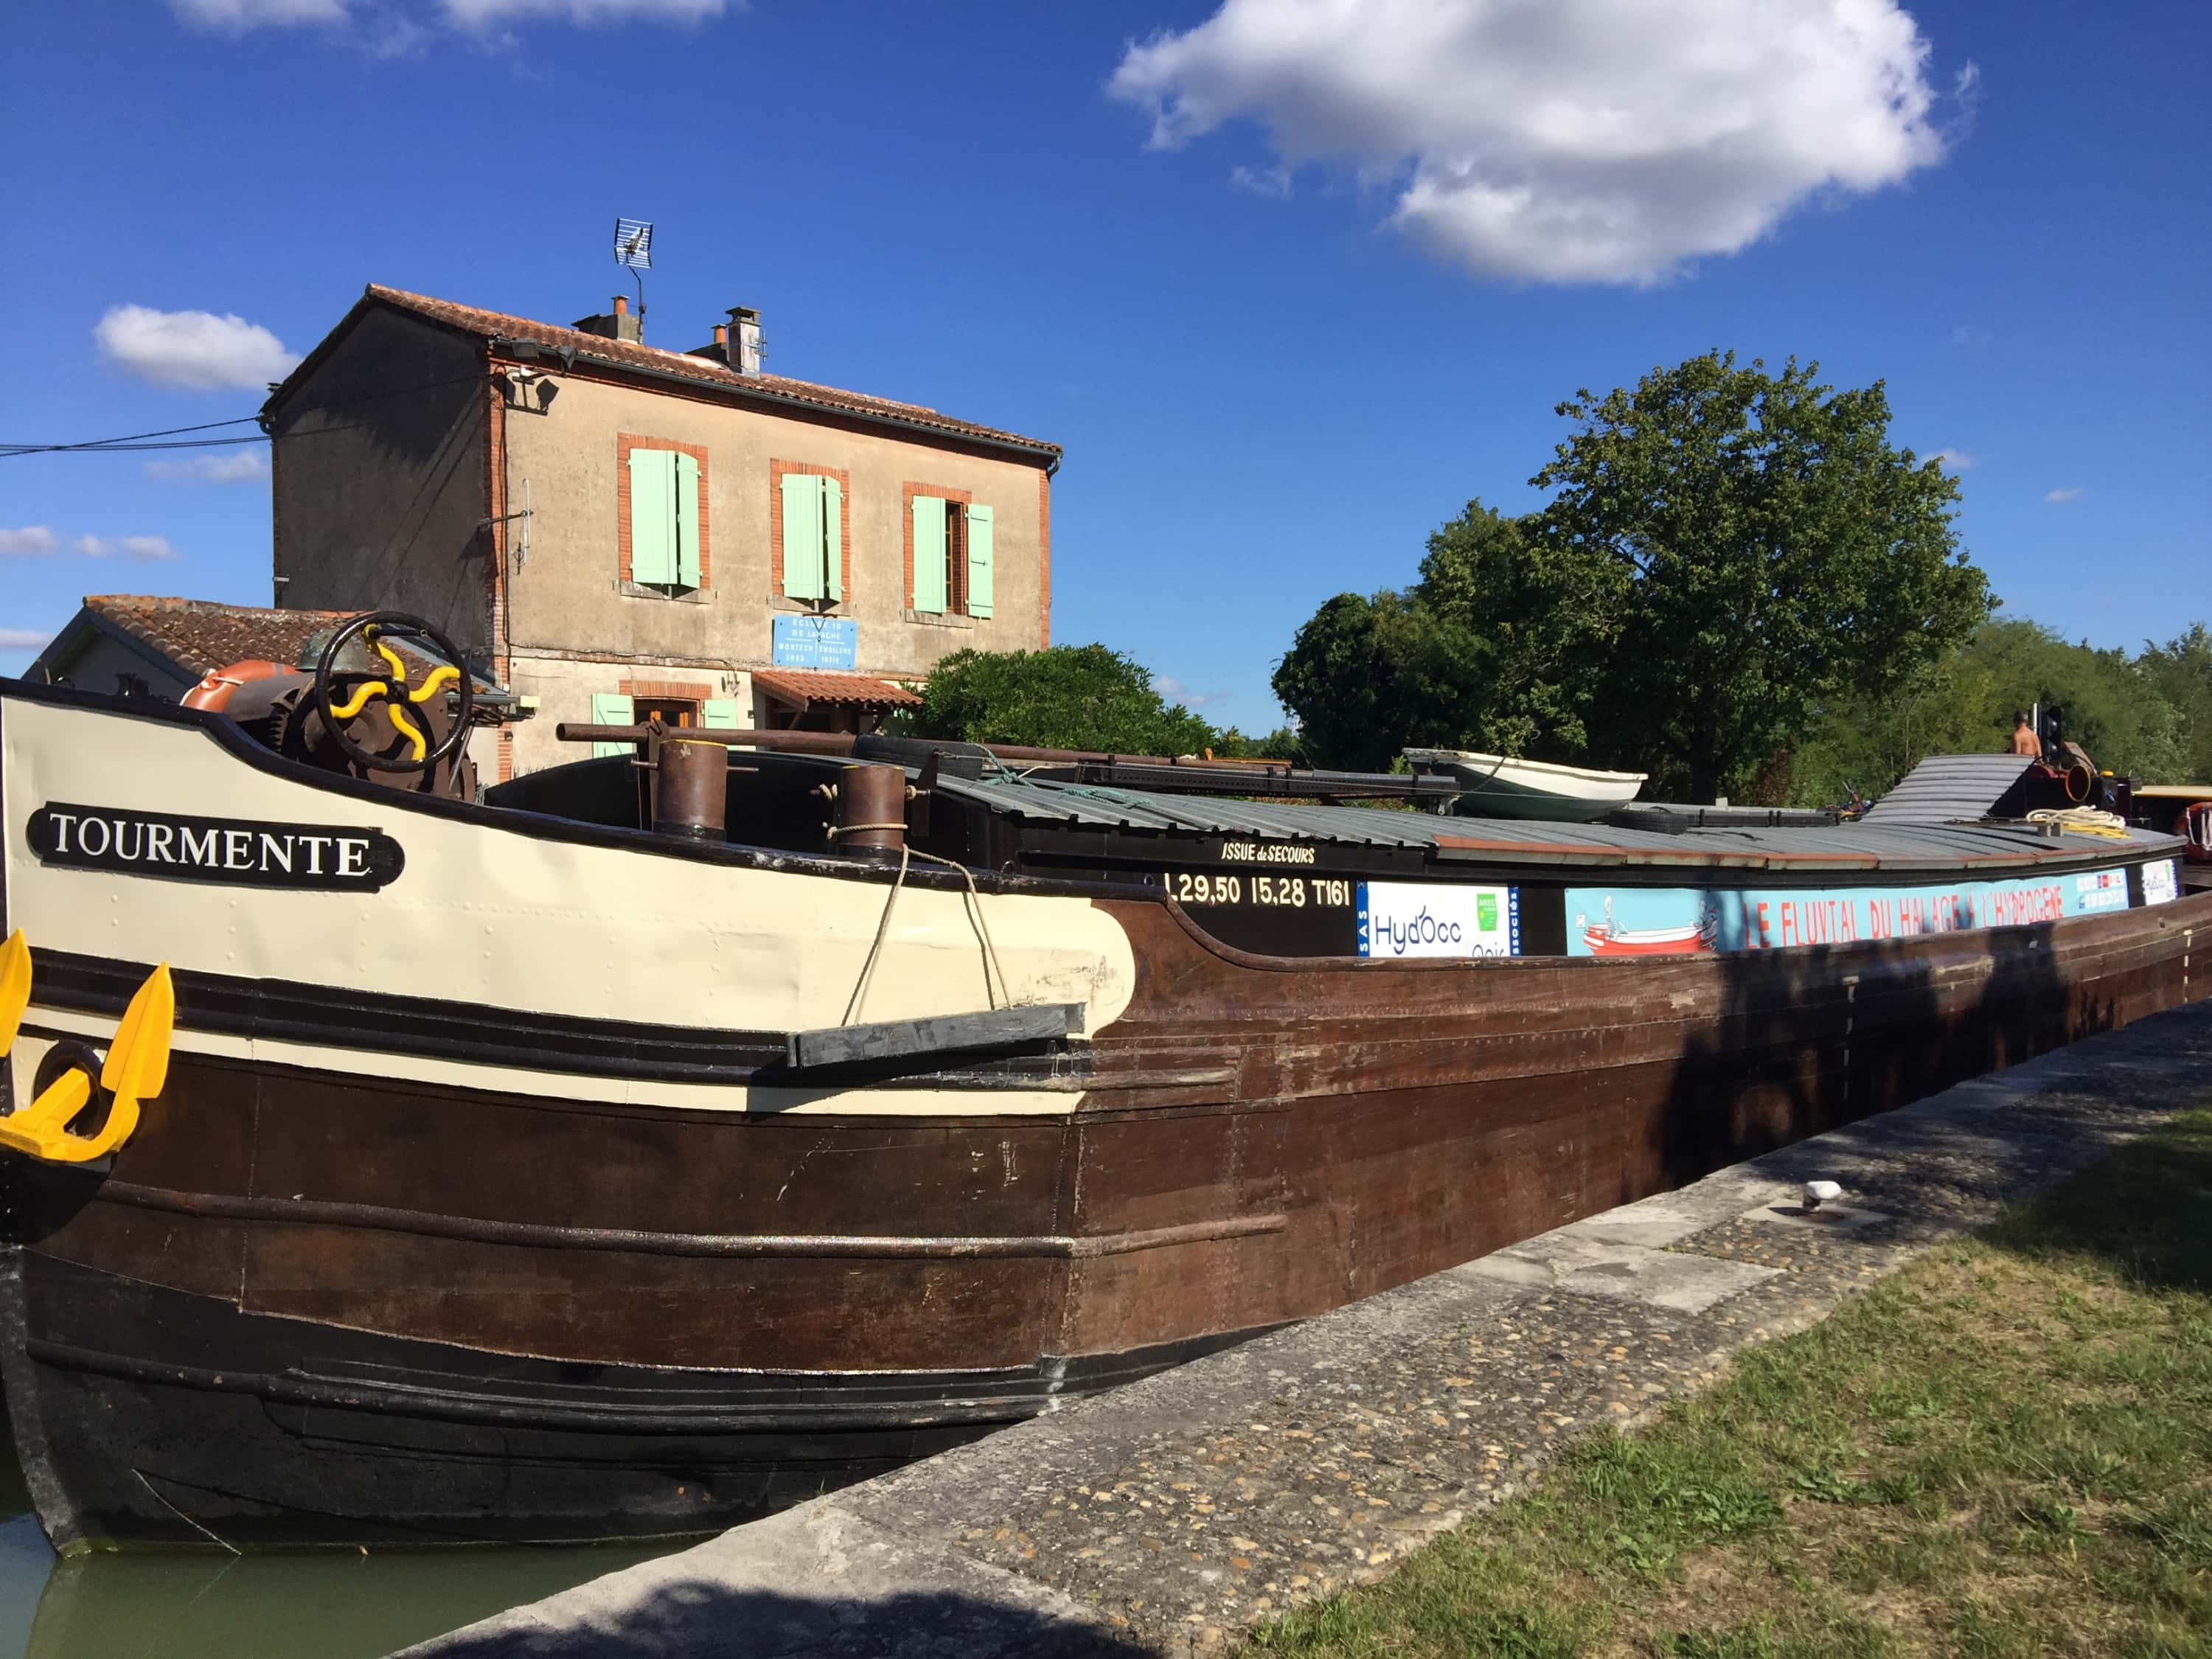 Bordeaux a port of call for the narrowboat Tourmente